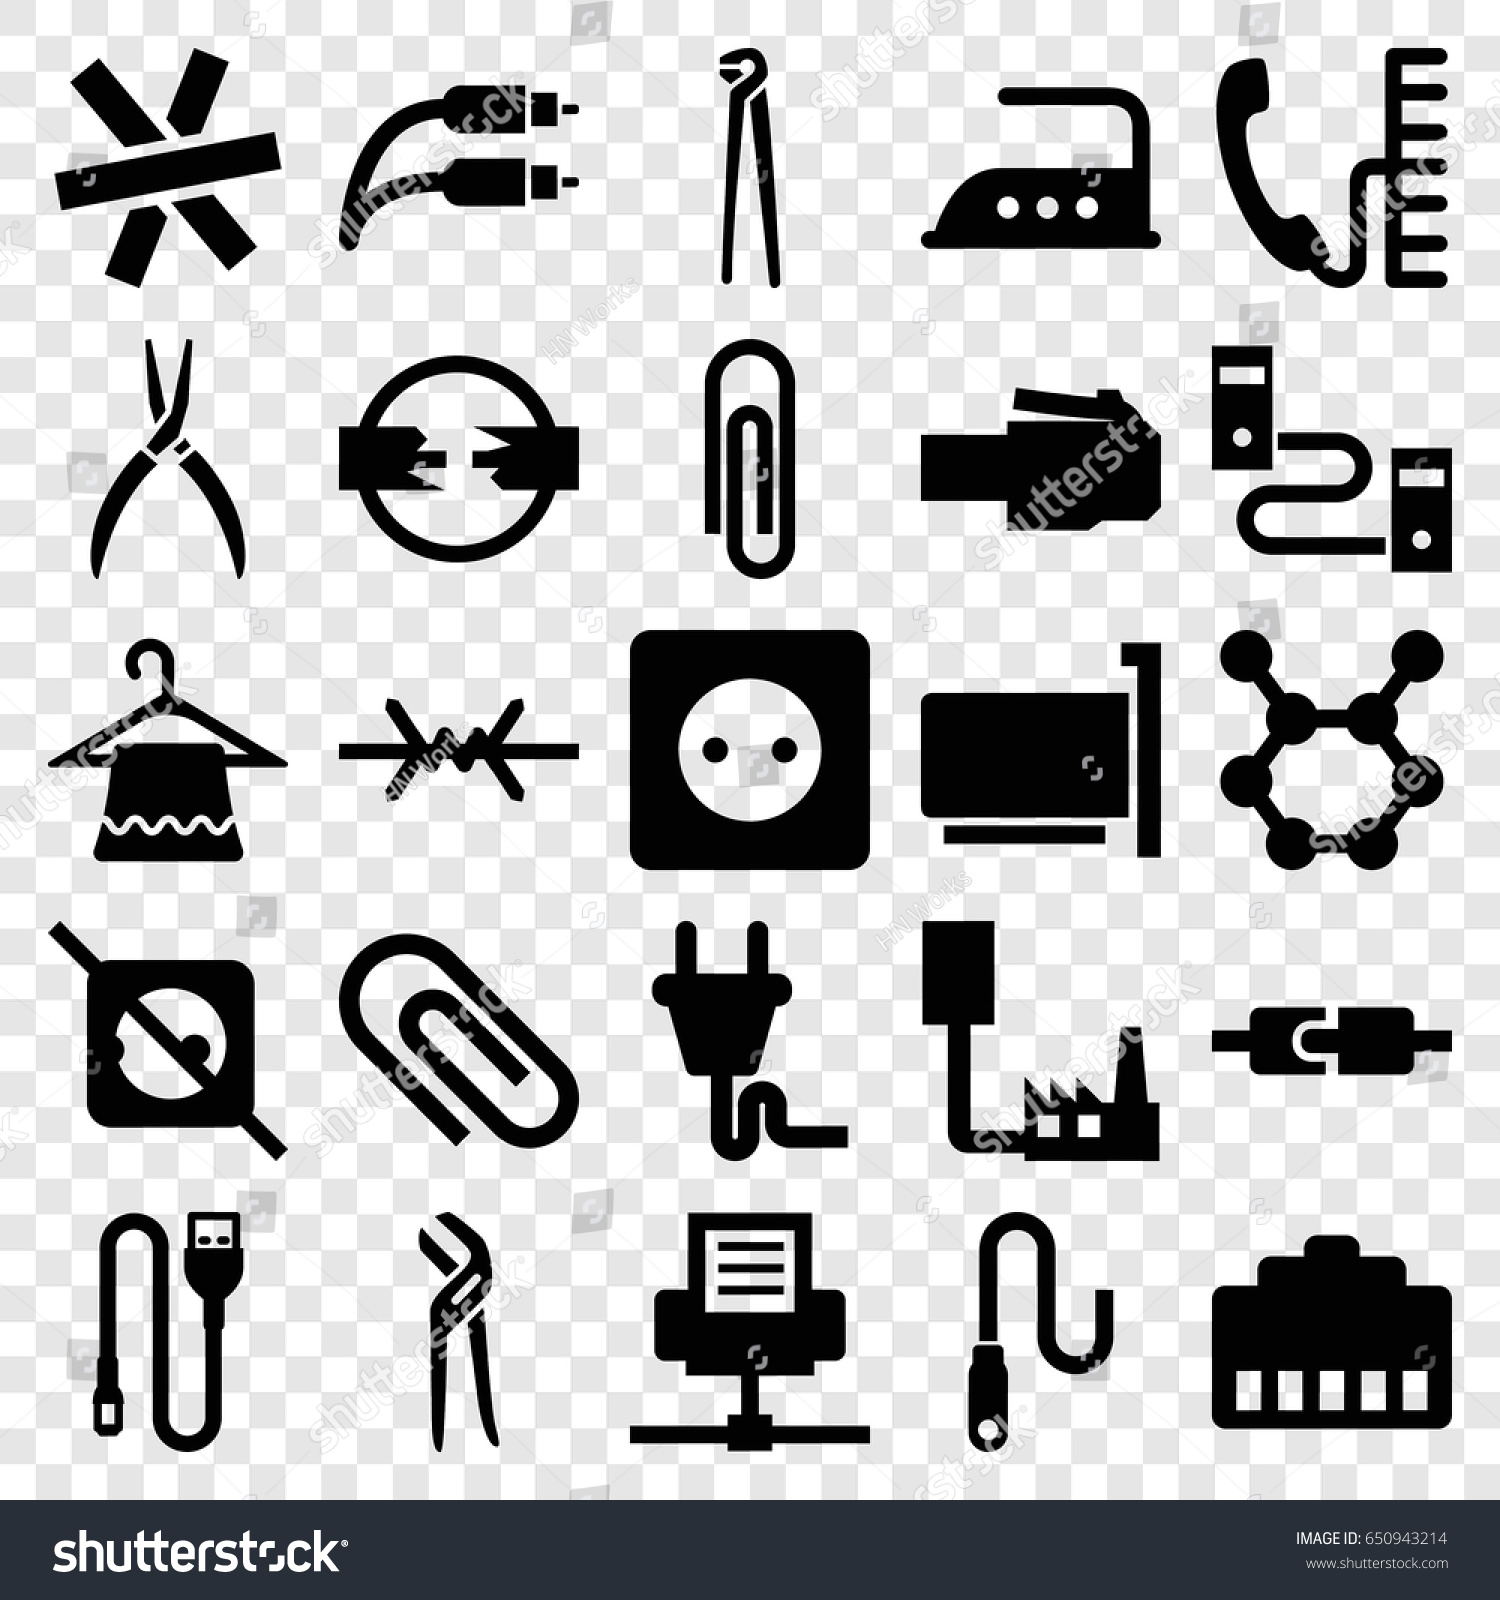 stock vector wire icons set set of wire filled icons such as plug socket hanger iron pliers plug phone 650943214 k laser cube zoom hand piece wiring diagram,laser \u2022 indy500 co Simple Electrical Wiring Diagrams at cos-gaming.co